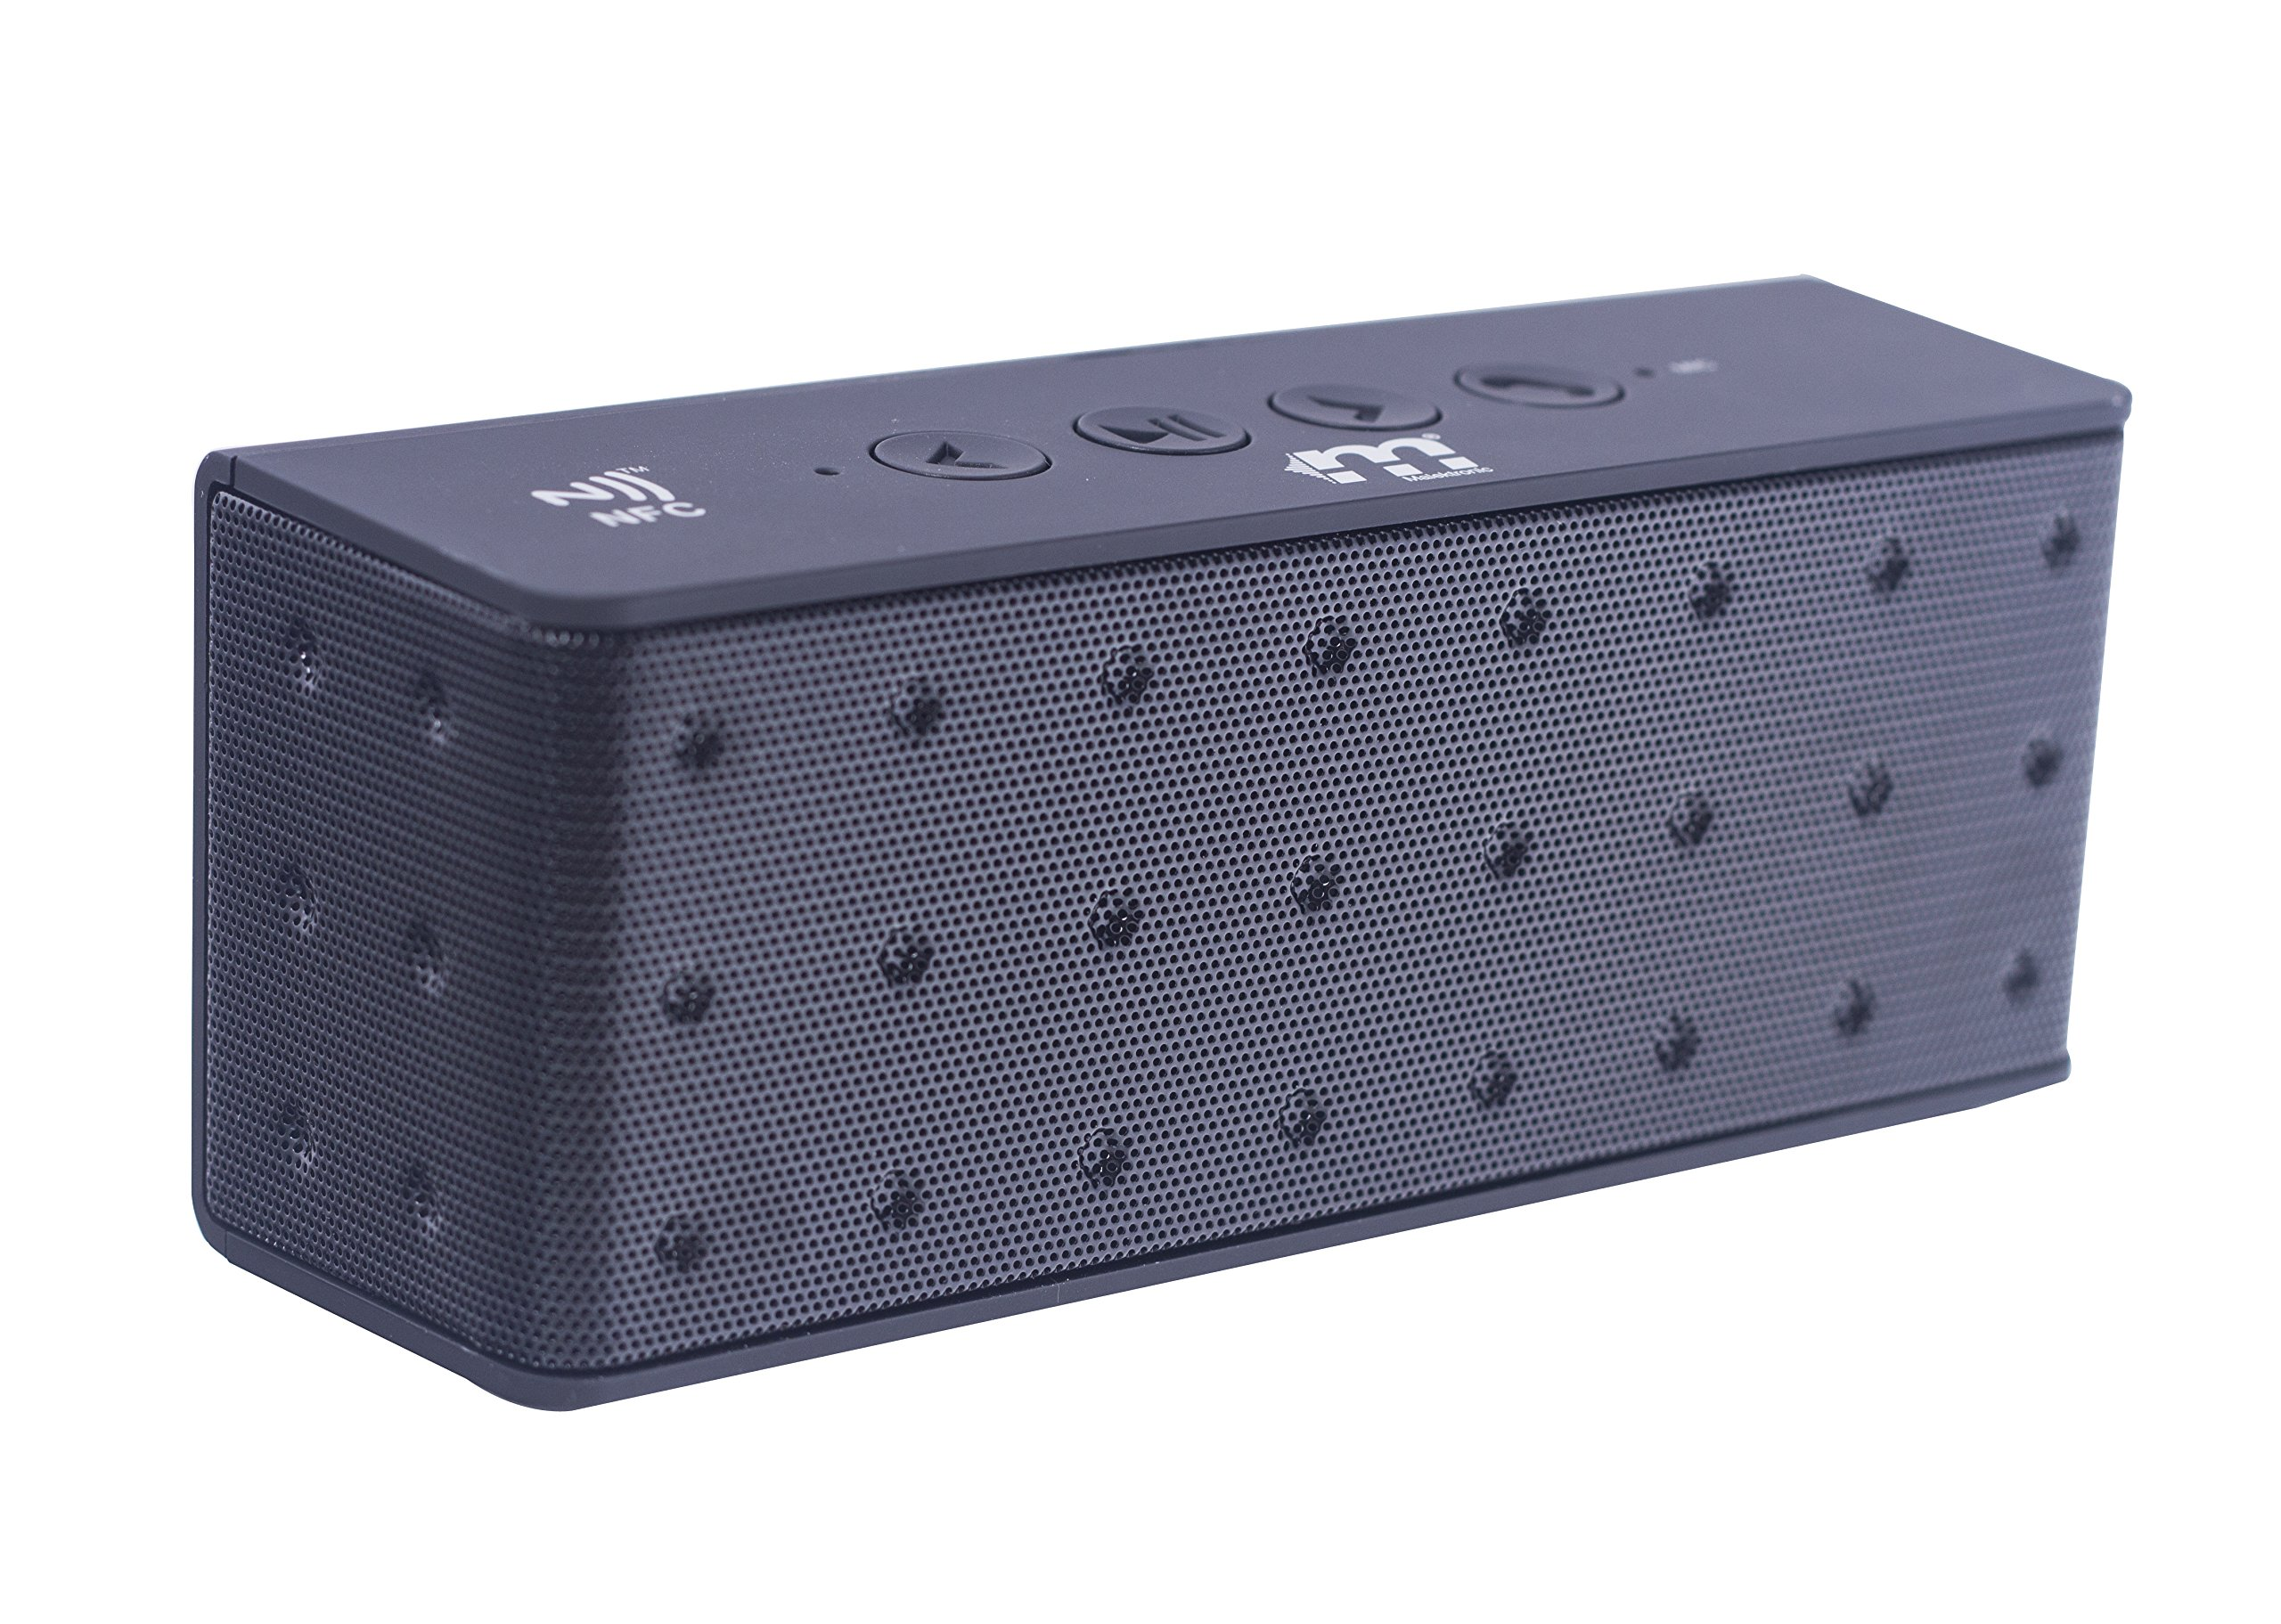 Malektronic Malibu 2.0 Bluetooth Speaker - Black